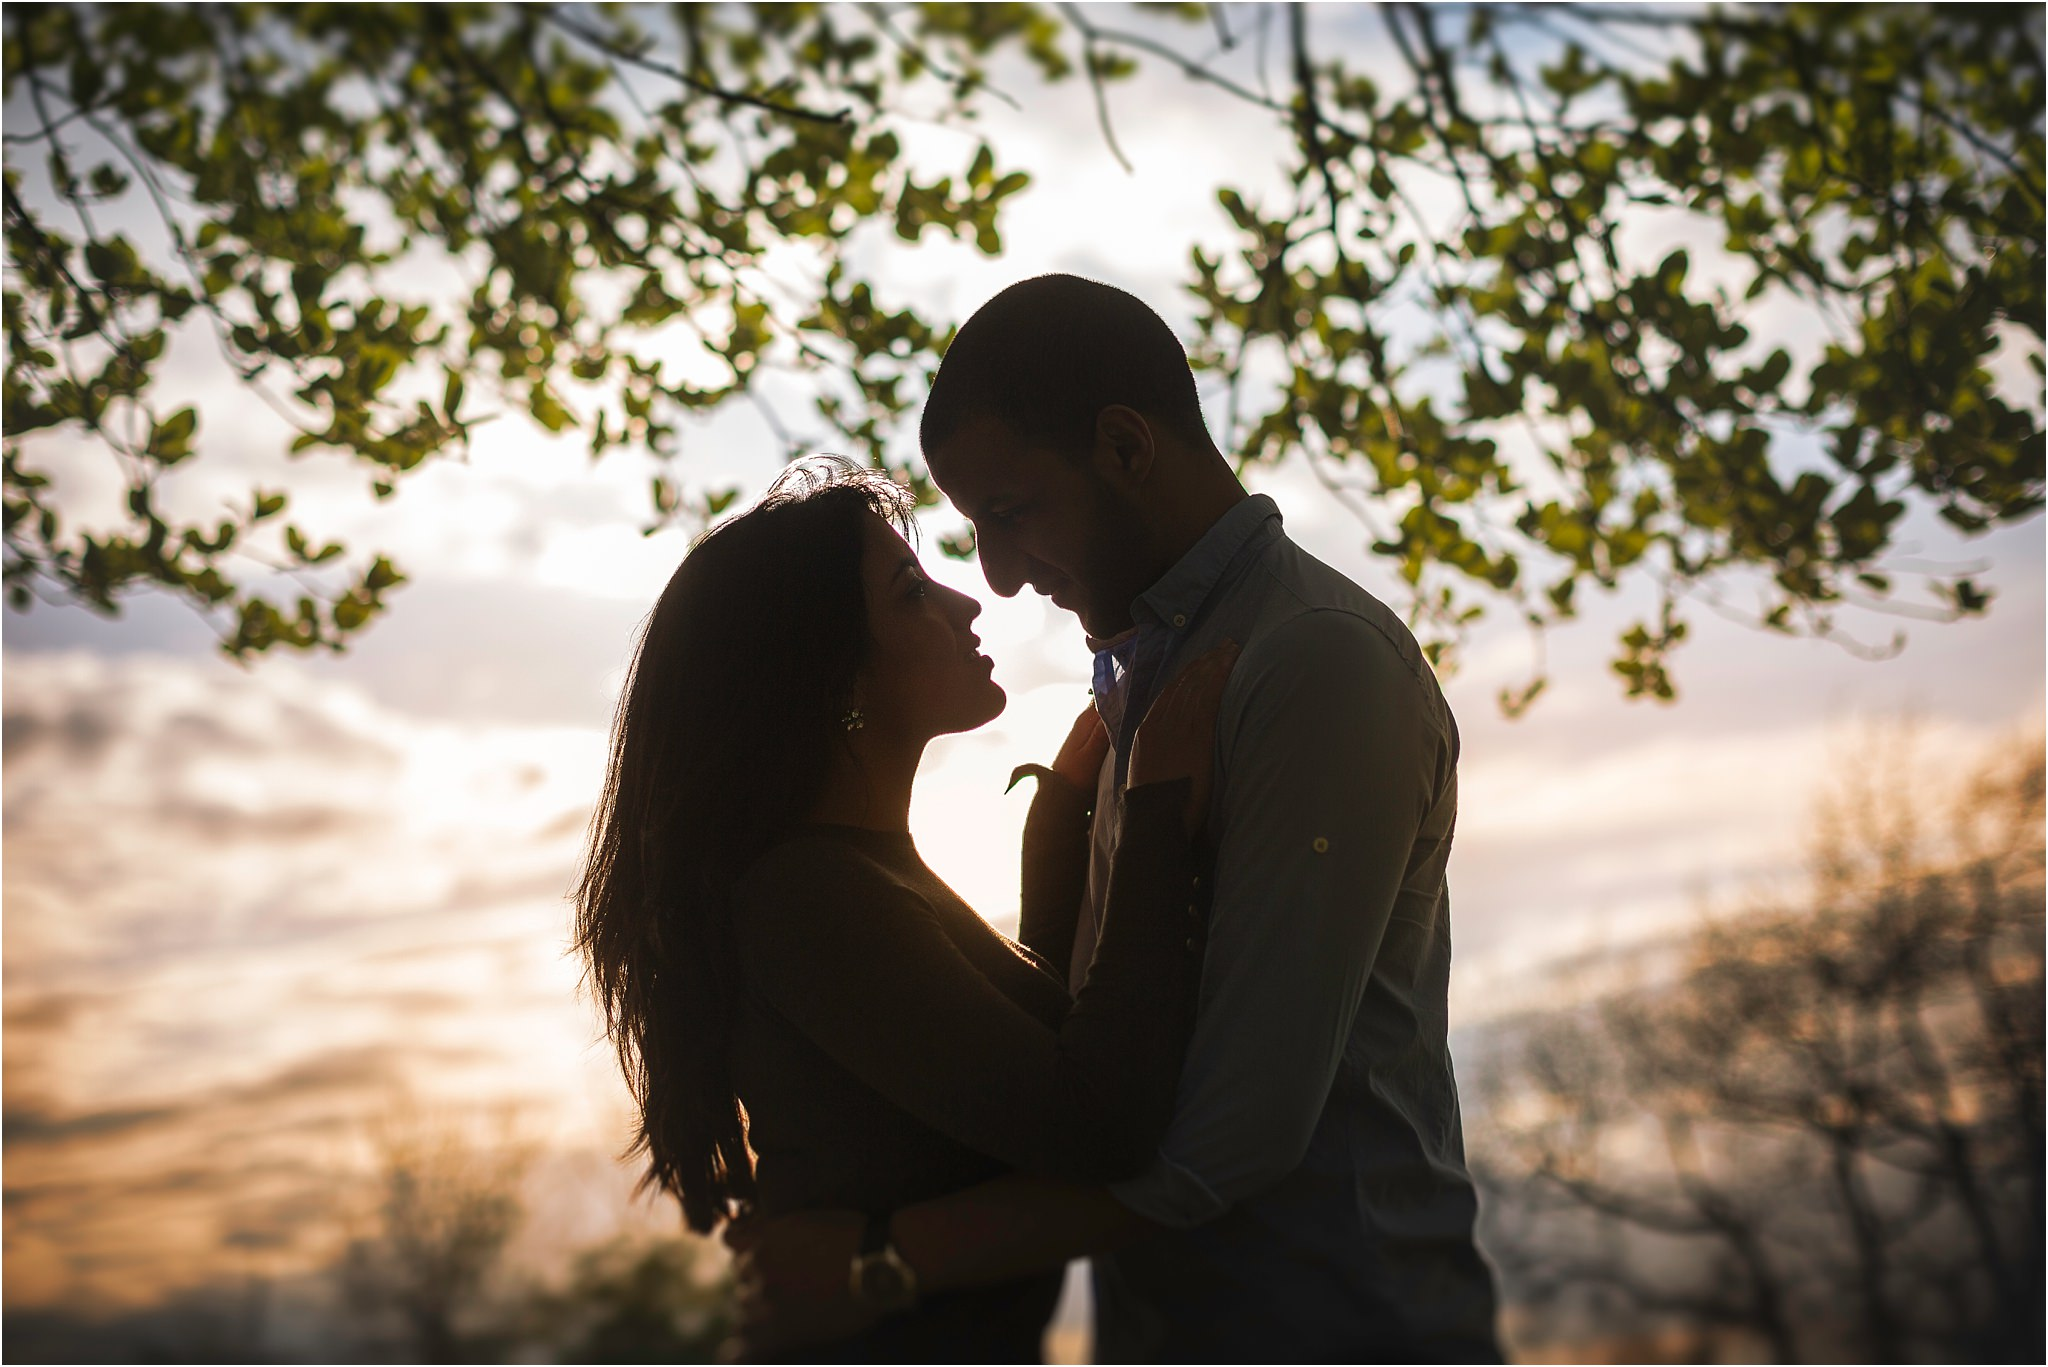 A slightly silouetted image of a couple about to kiss with orange sky to the bottom of the image and branches of leaves behind them at the top of the image.